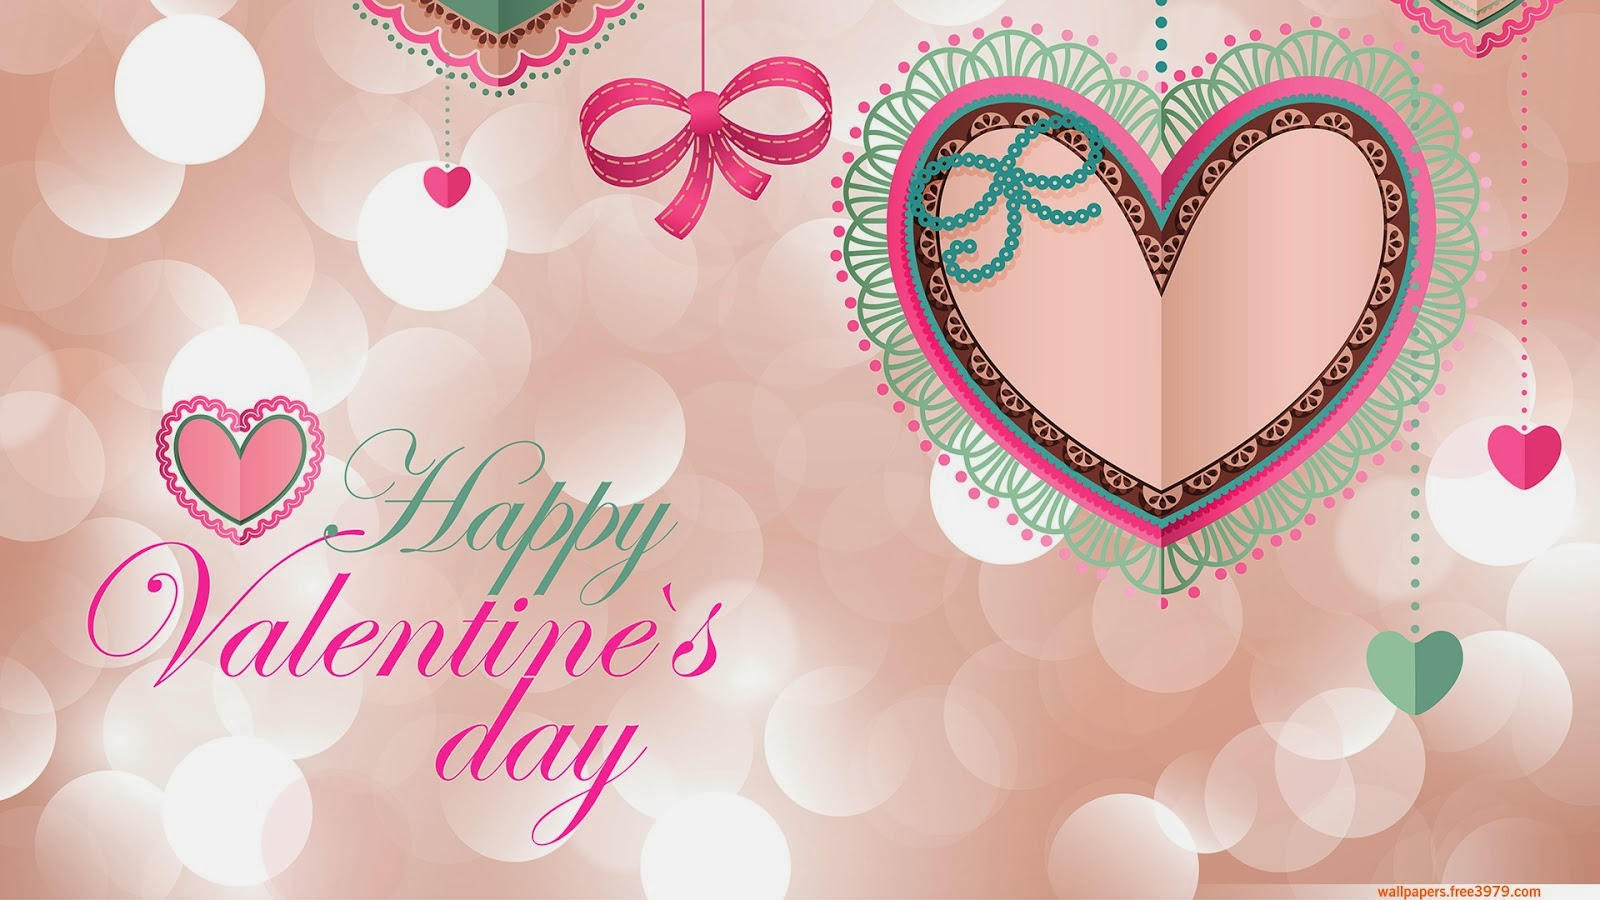 25 Ever Romantic Valentines Day Wallpapers A House of Fun 1600x900